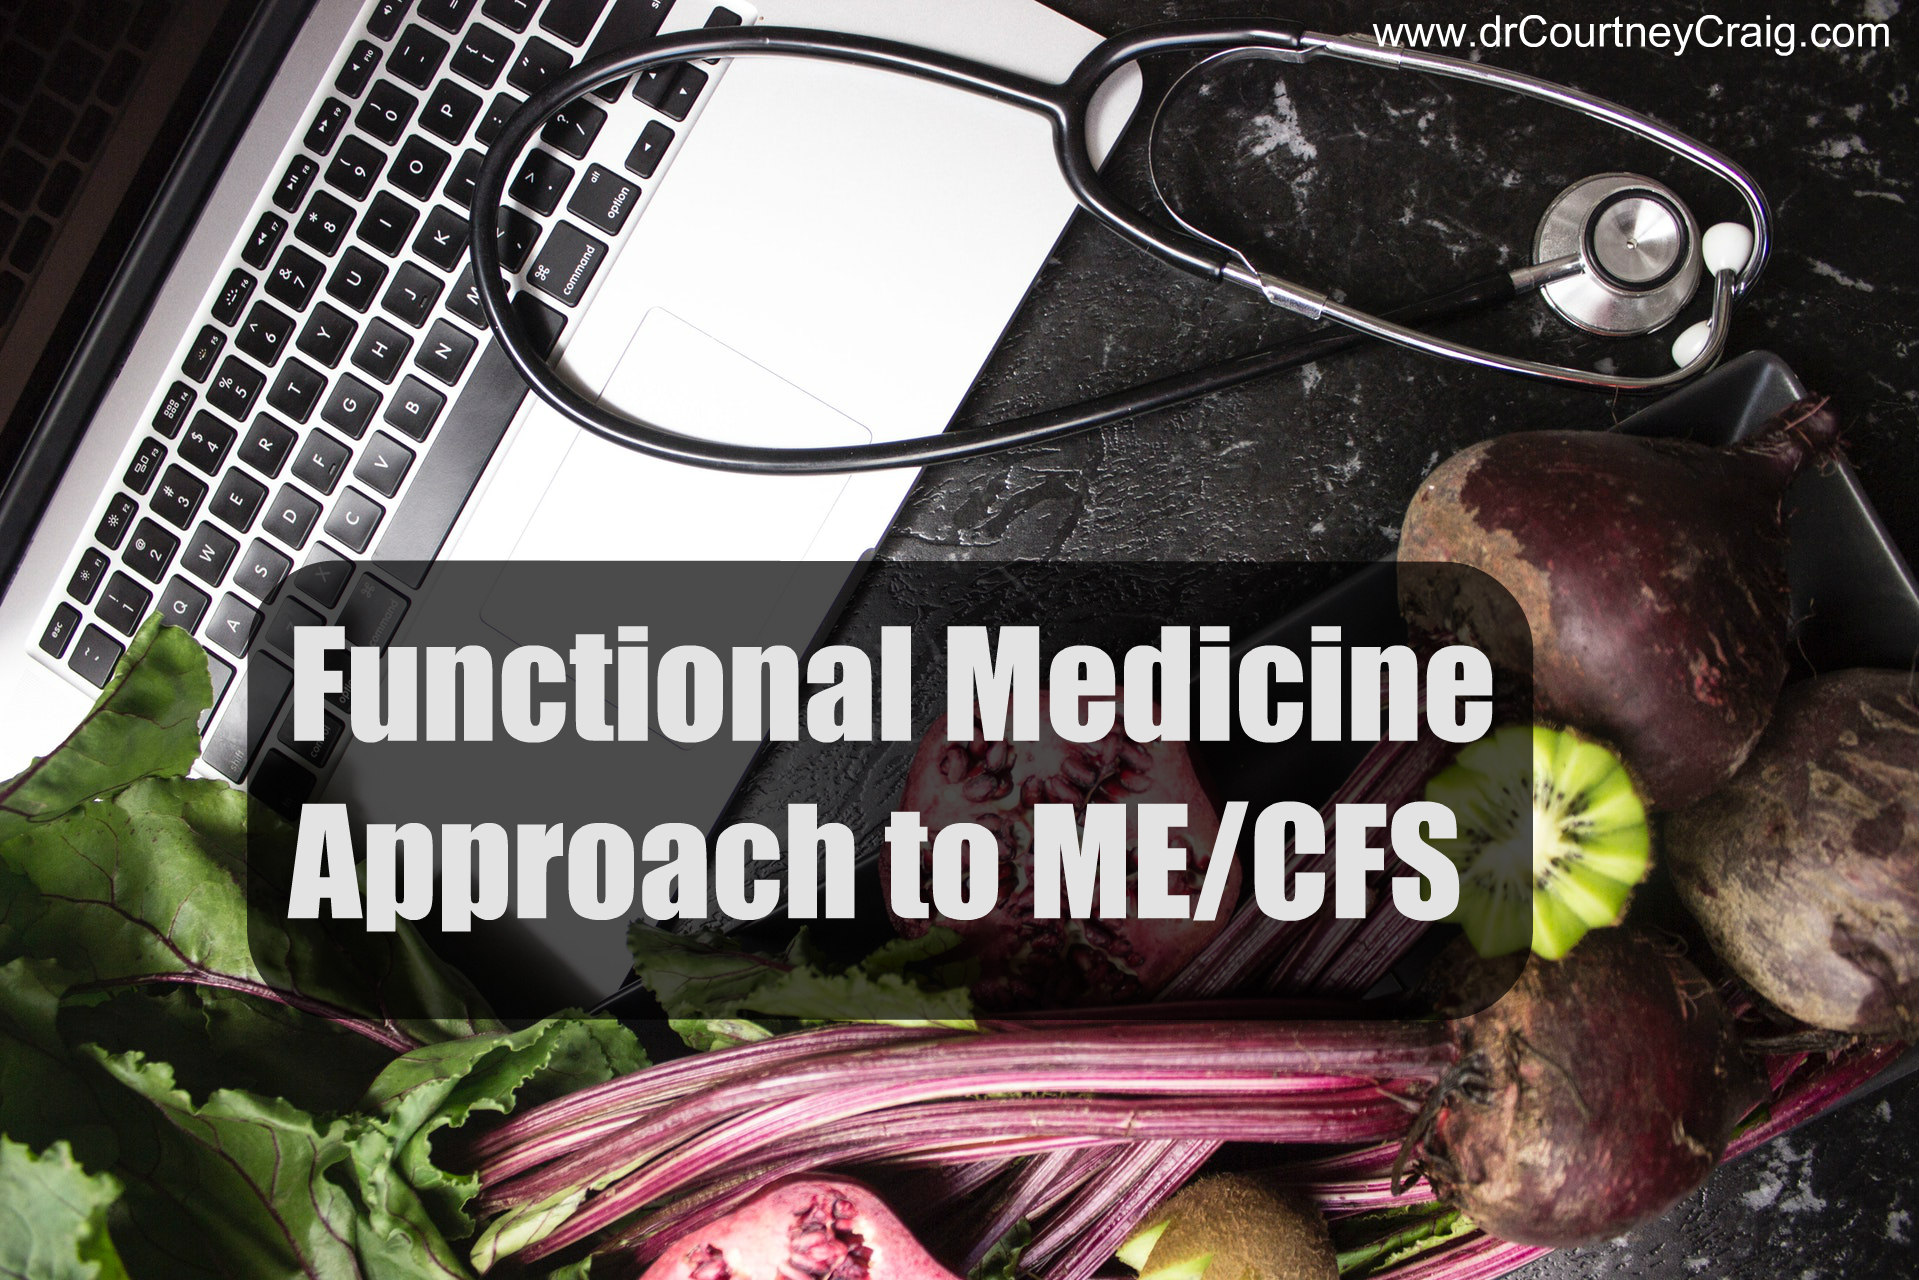 What functional medicine treatments are available for chronic fatigue syndrome and fibromyalgia?